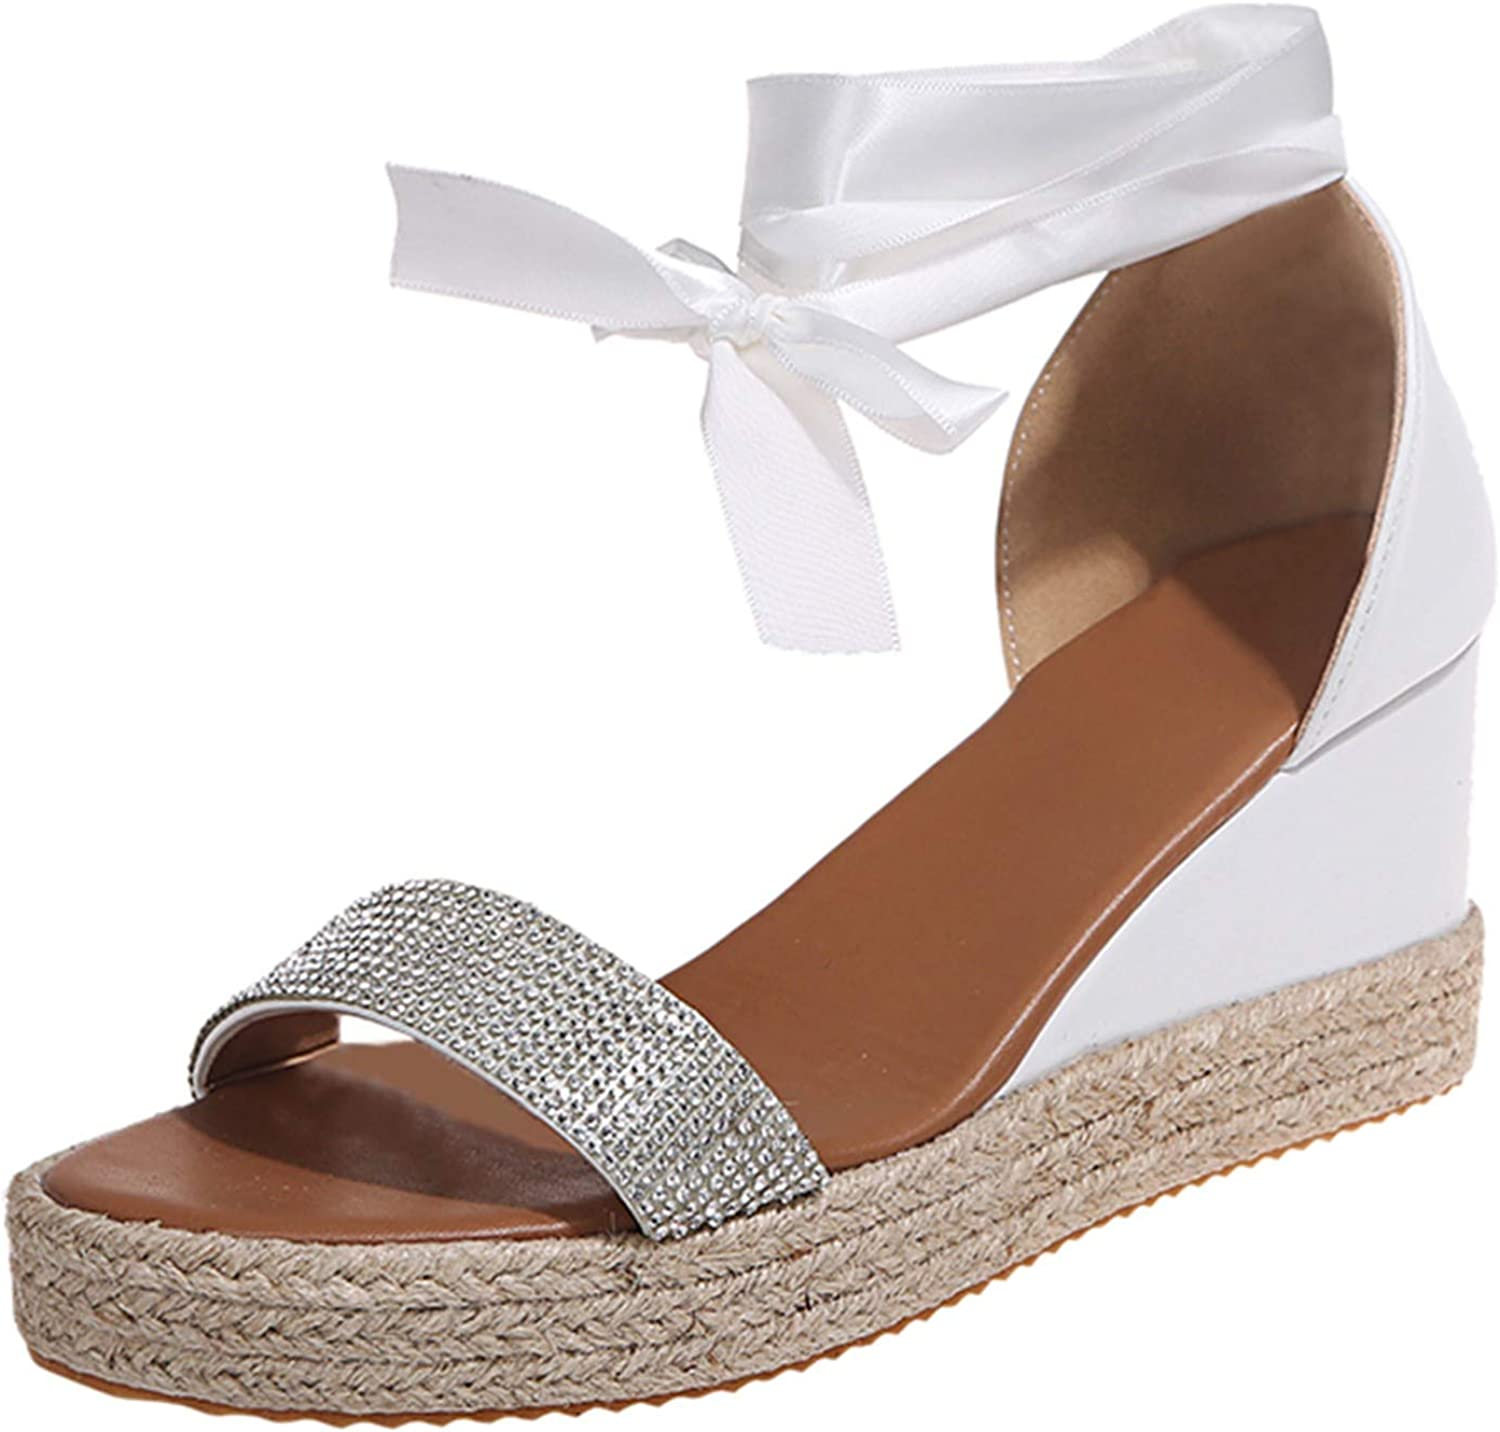 Women's Summer Lace-Up Wedges Weave Beach Open Toe Breathable Sa